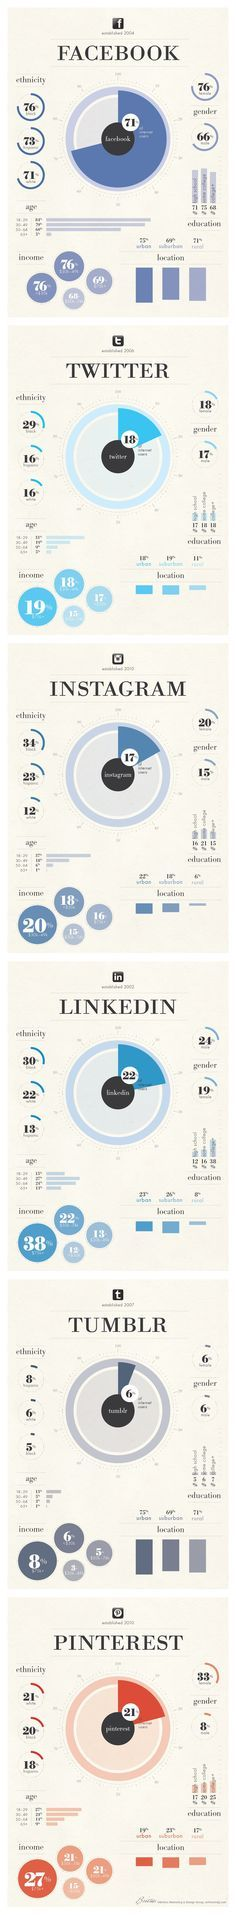 Social User Demographics via Angela LeBrun  For Facebook, Twitter, Instagram, LinkedIn, Tumblr and #Pinterest - #infographic